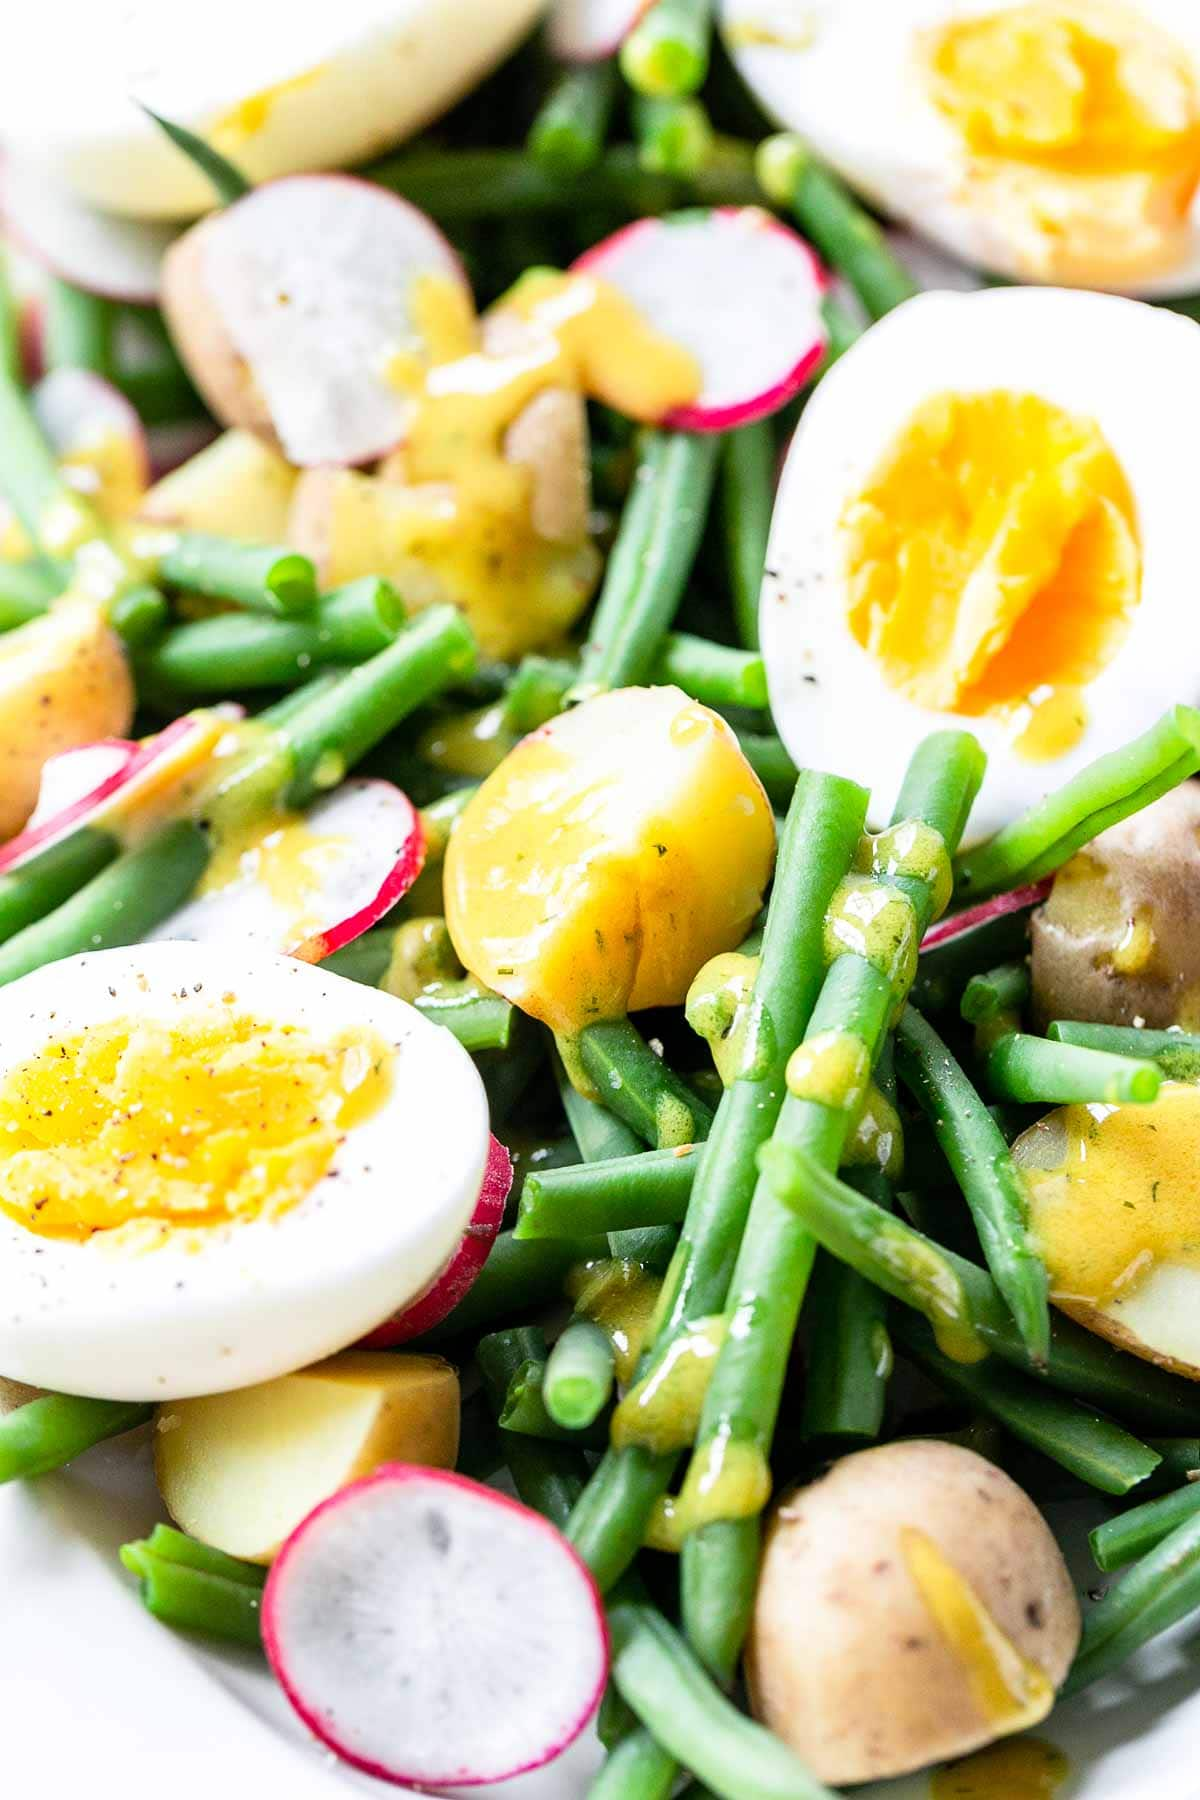 This French bistro salad is amazing! Made with crisp green beans and the best French salad dressing. Luke warm you can serve this as a salad, starter and even as a side dish. Visit fastfoodbistro.com for the full recipe so you can try it! #fastfoodbistro #frenchbistrosalad #greenbeanssalad #salad #starter